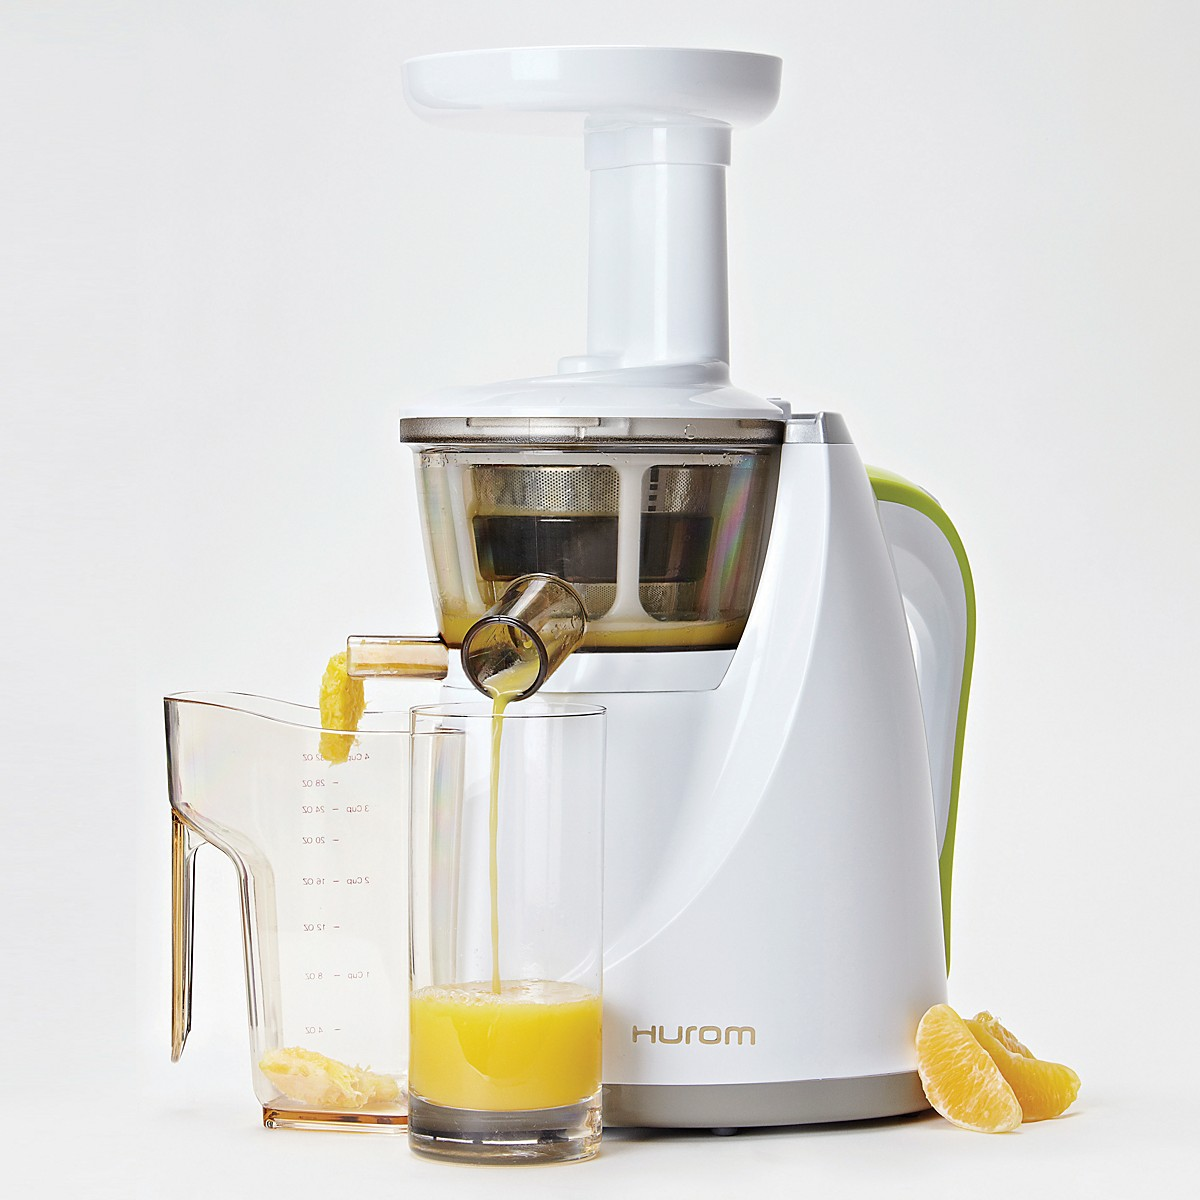 Slow Juicer Eksi : The Wish List 2014 Our favourite kitchen appliances for ...